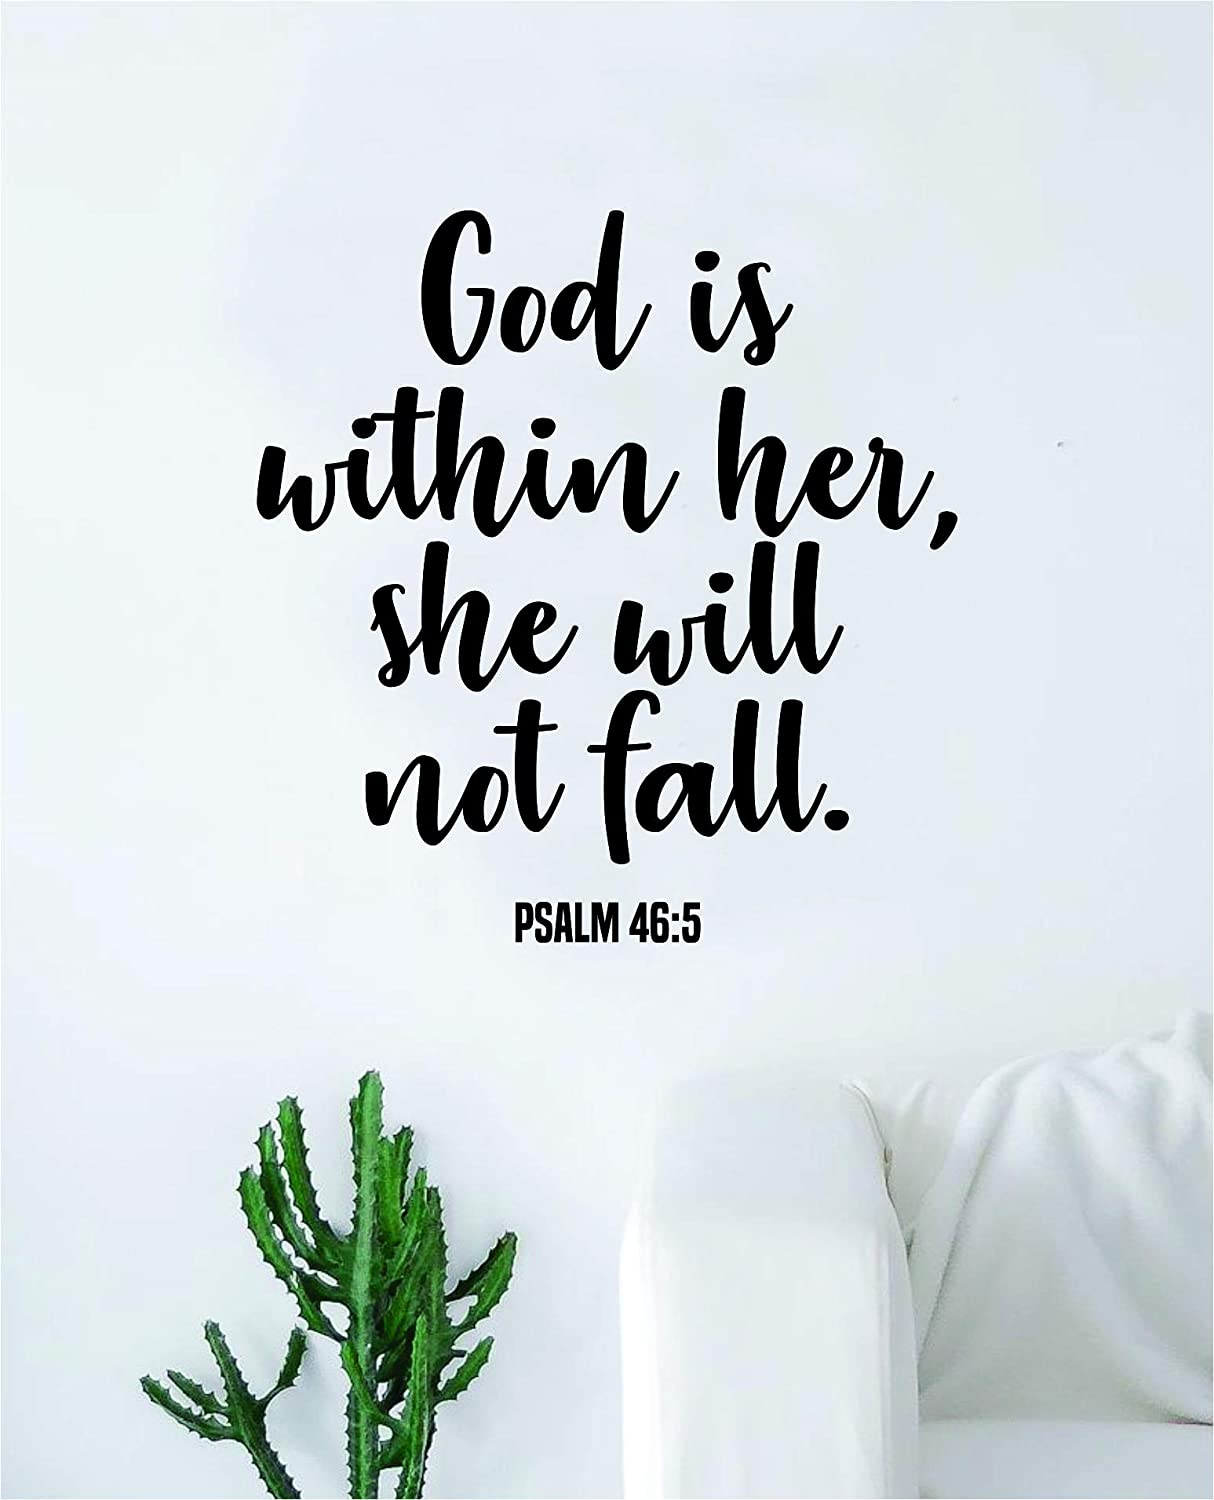 God is Within Her Wall Decal Sticker Vinyl Art Bedroom Living Room Decor Decoration Teen Quote Inspirational Boy Girl Church Religious Religion Jesus Amen Blessed Verse Psalm